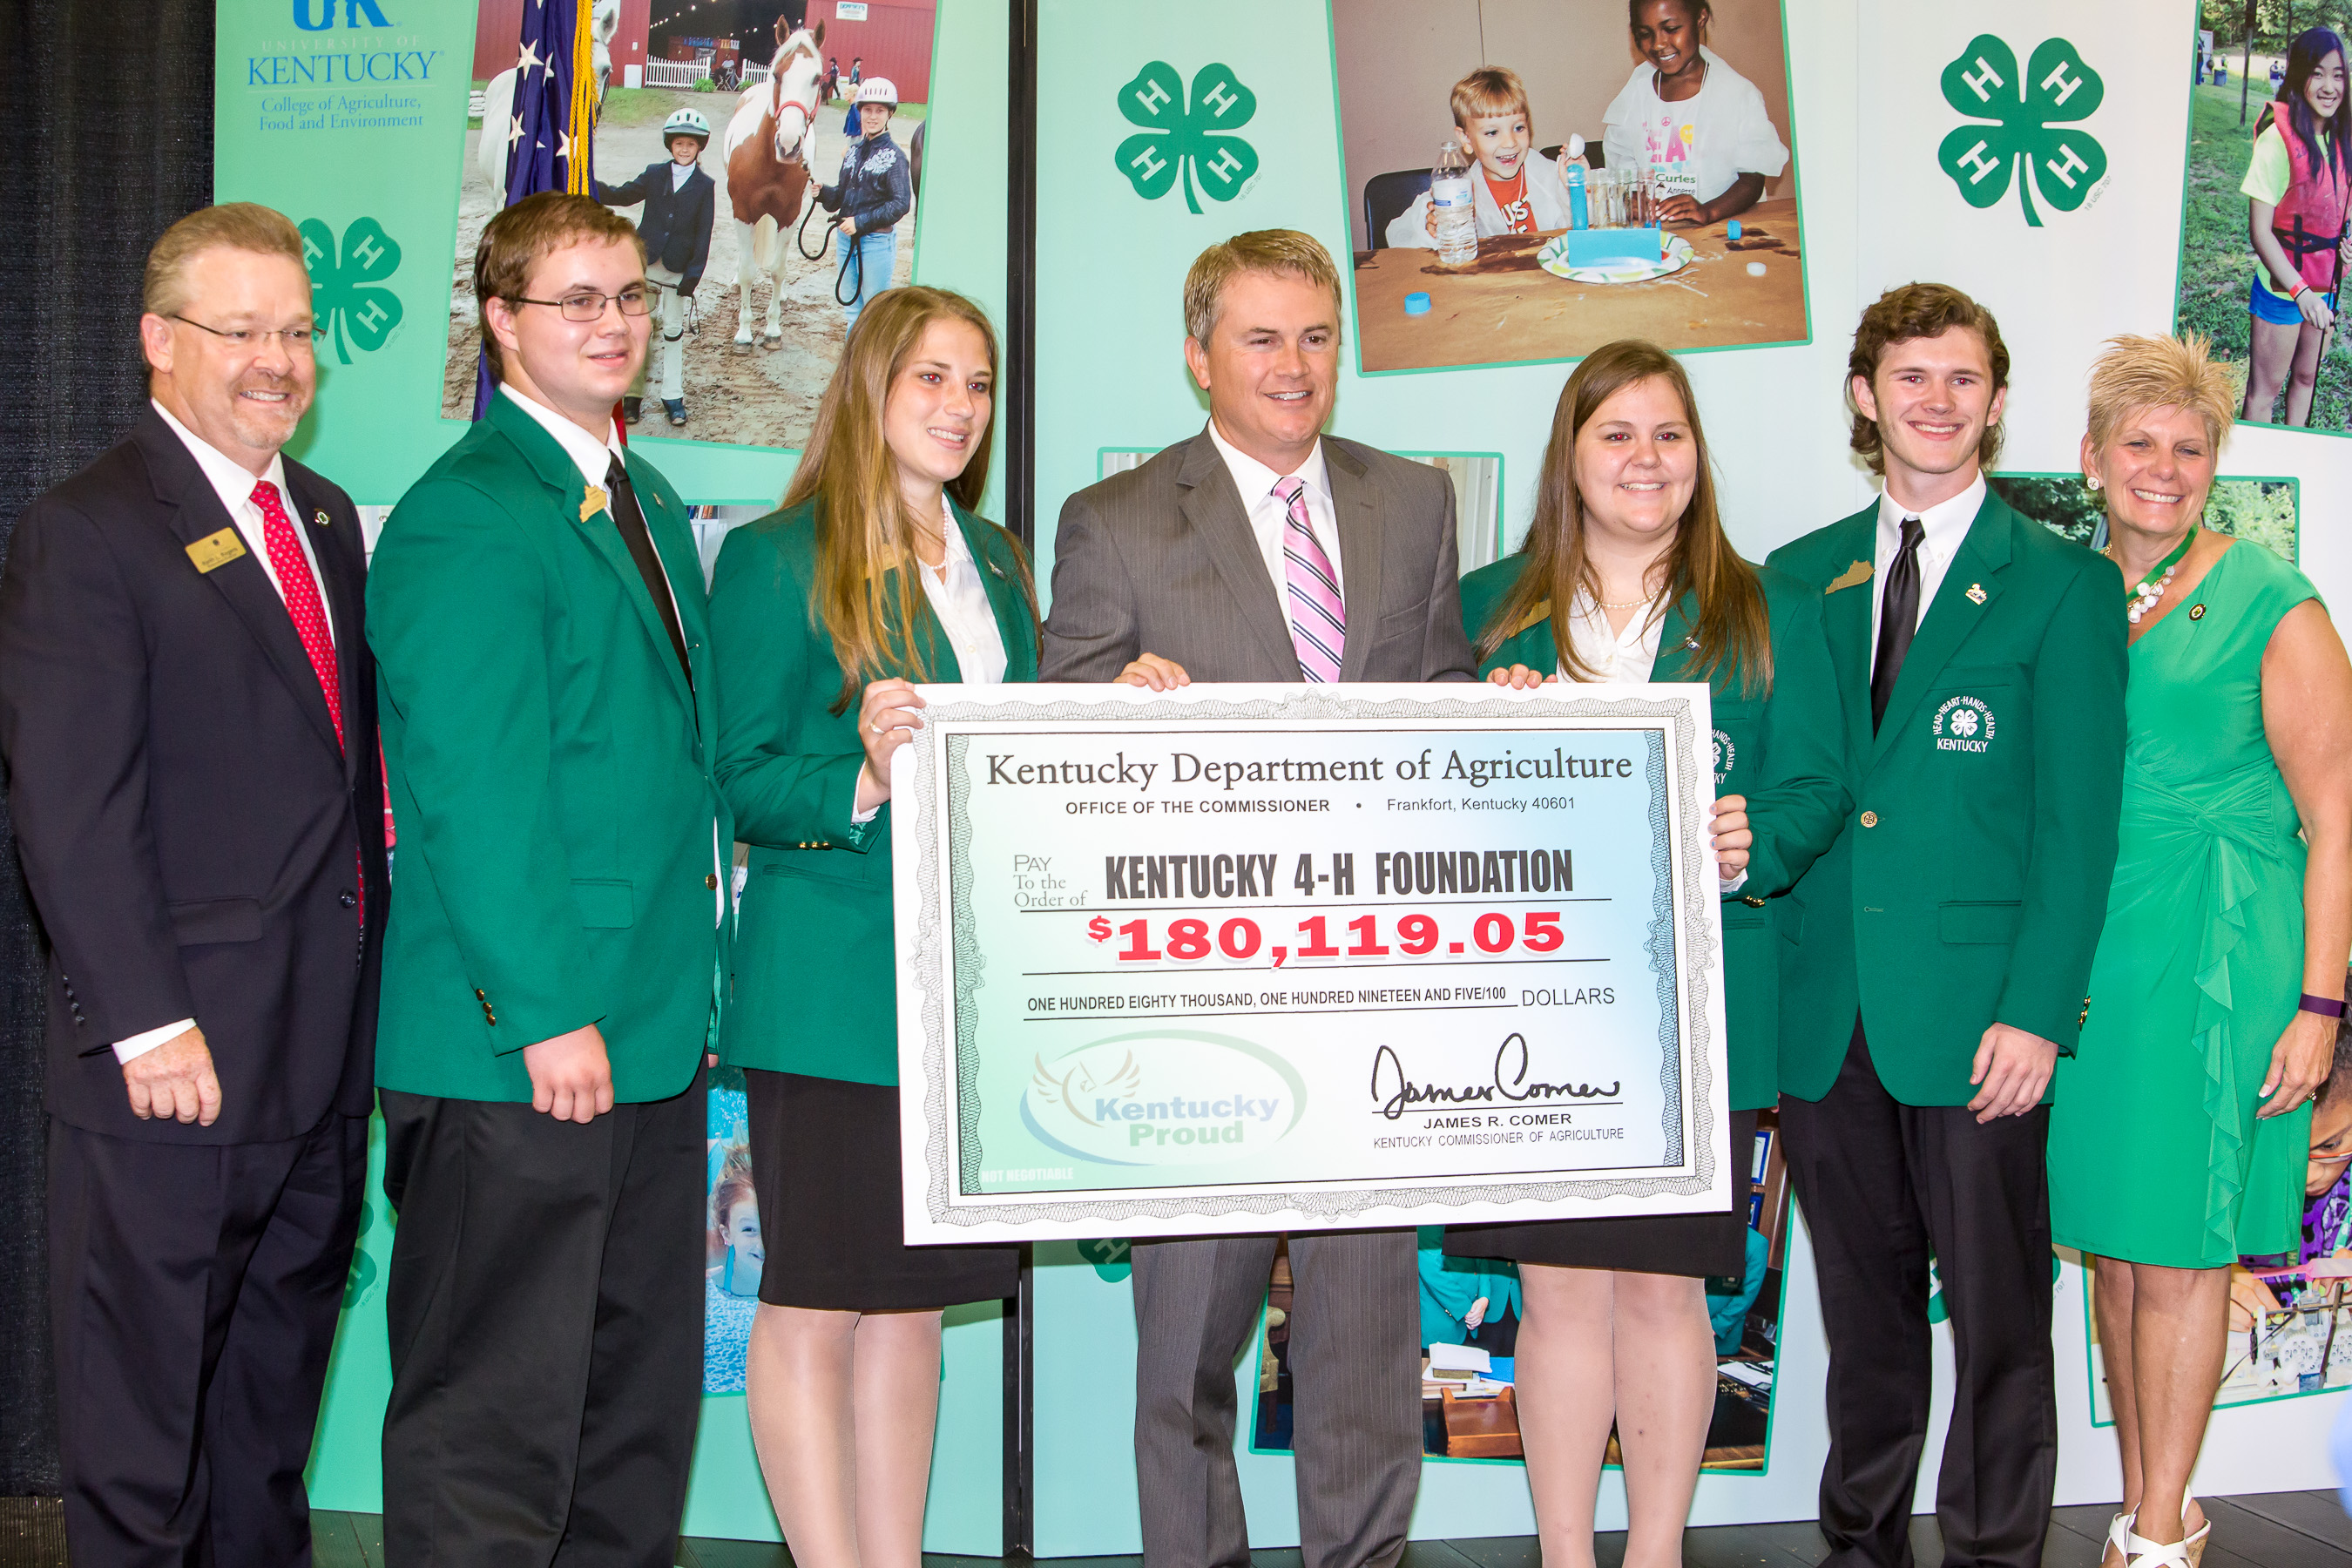 James Comer, Kentucky Commissioner of Agriculture, presents Kentucky 4-H a check from proceeds of the Kentucky farm license plate voluntary donations to the Agricultural Program Trust Fund. The Kentucky 4-H Foundation held it's annual Friends of Kentucky 4-H breakfast in Cloverville, the Kentucky 4-H showcase, In the West Hall of the Kentucky Exposition Center at the 2015 Kentucky State Fair on Friday, August 21, 2015.